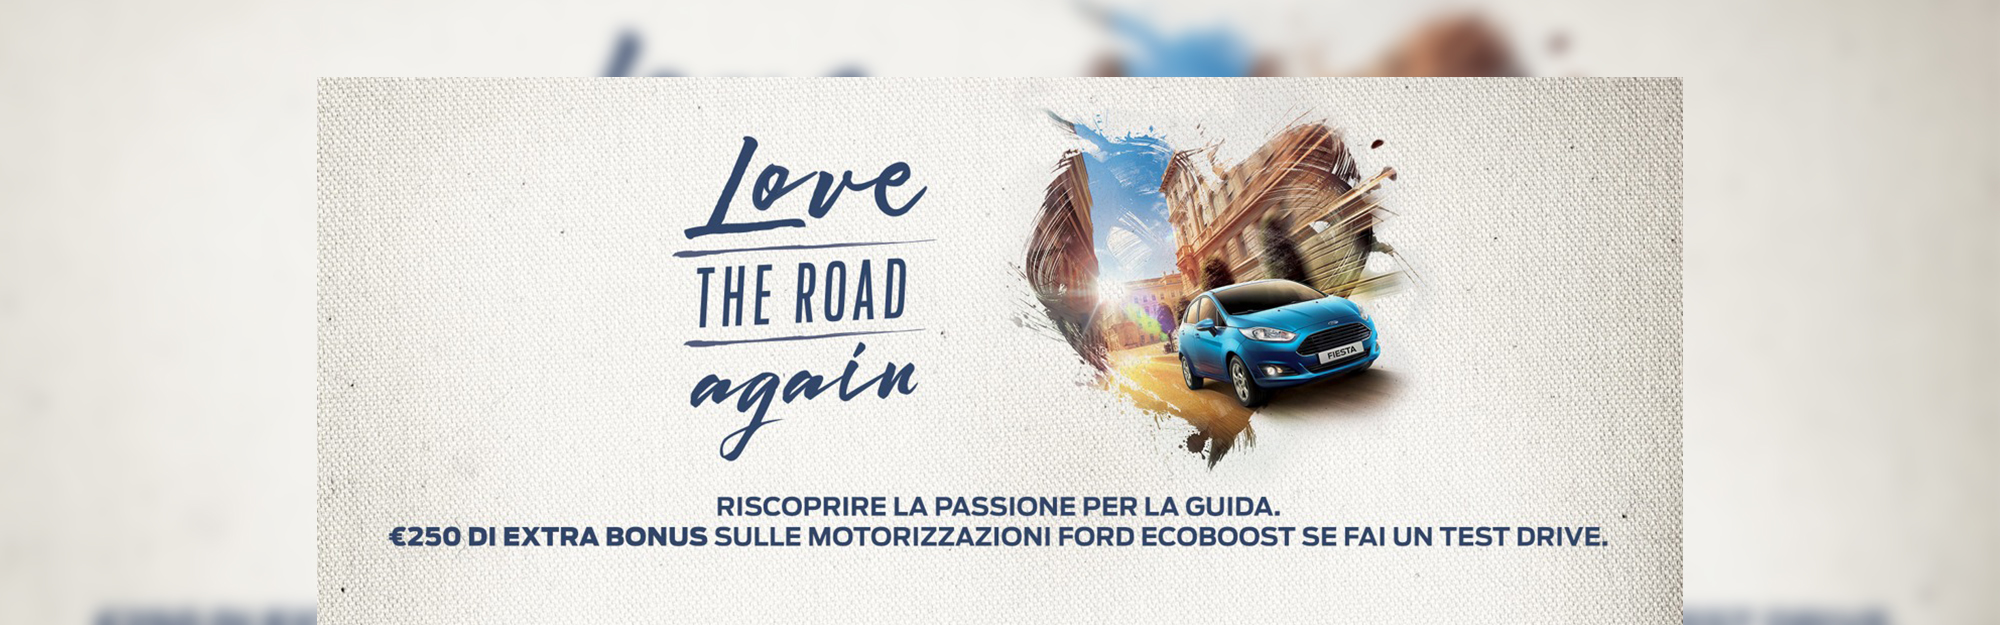 love_the_road